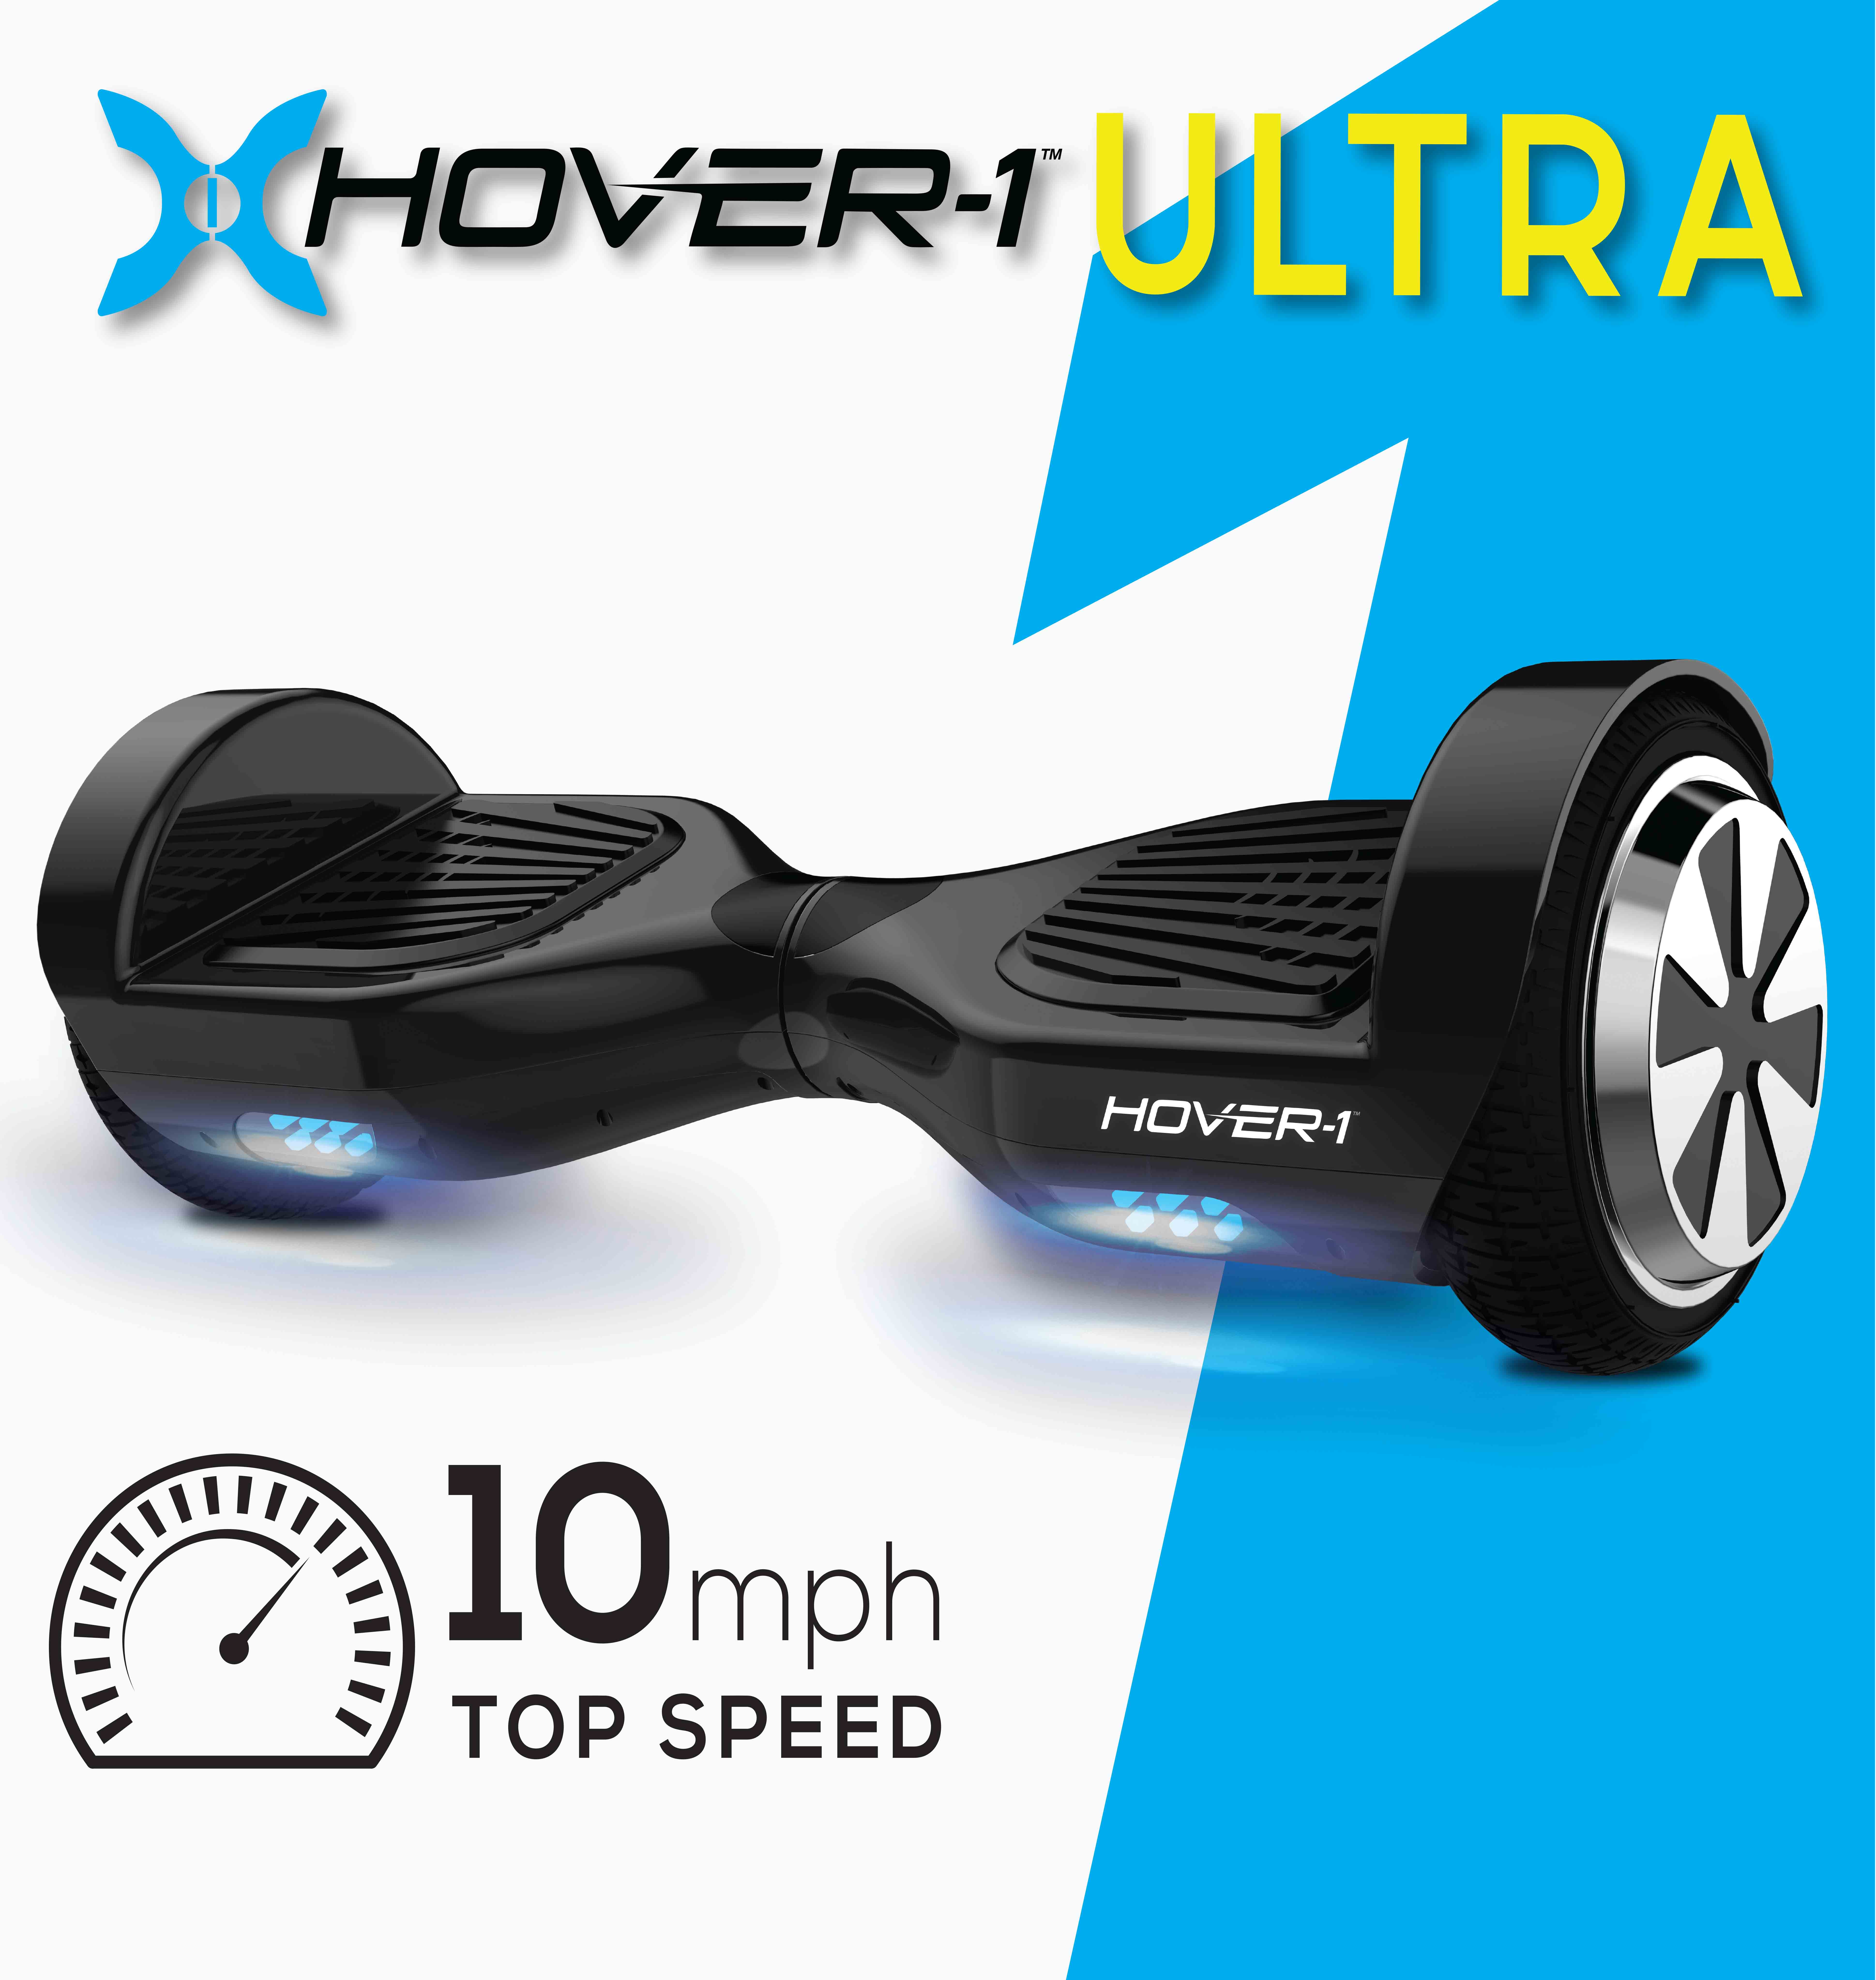 Hover-1 Ultra Electric Self-Balancing Scooter, Black